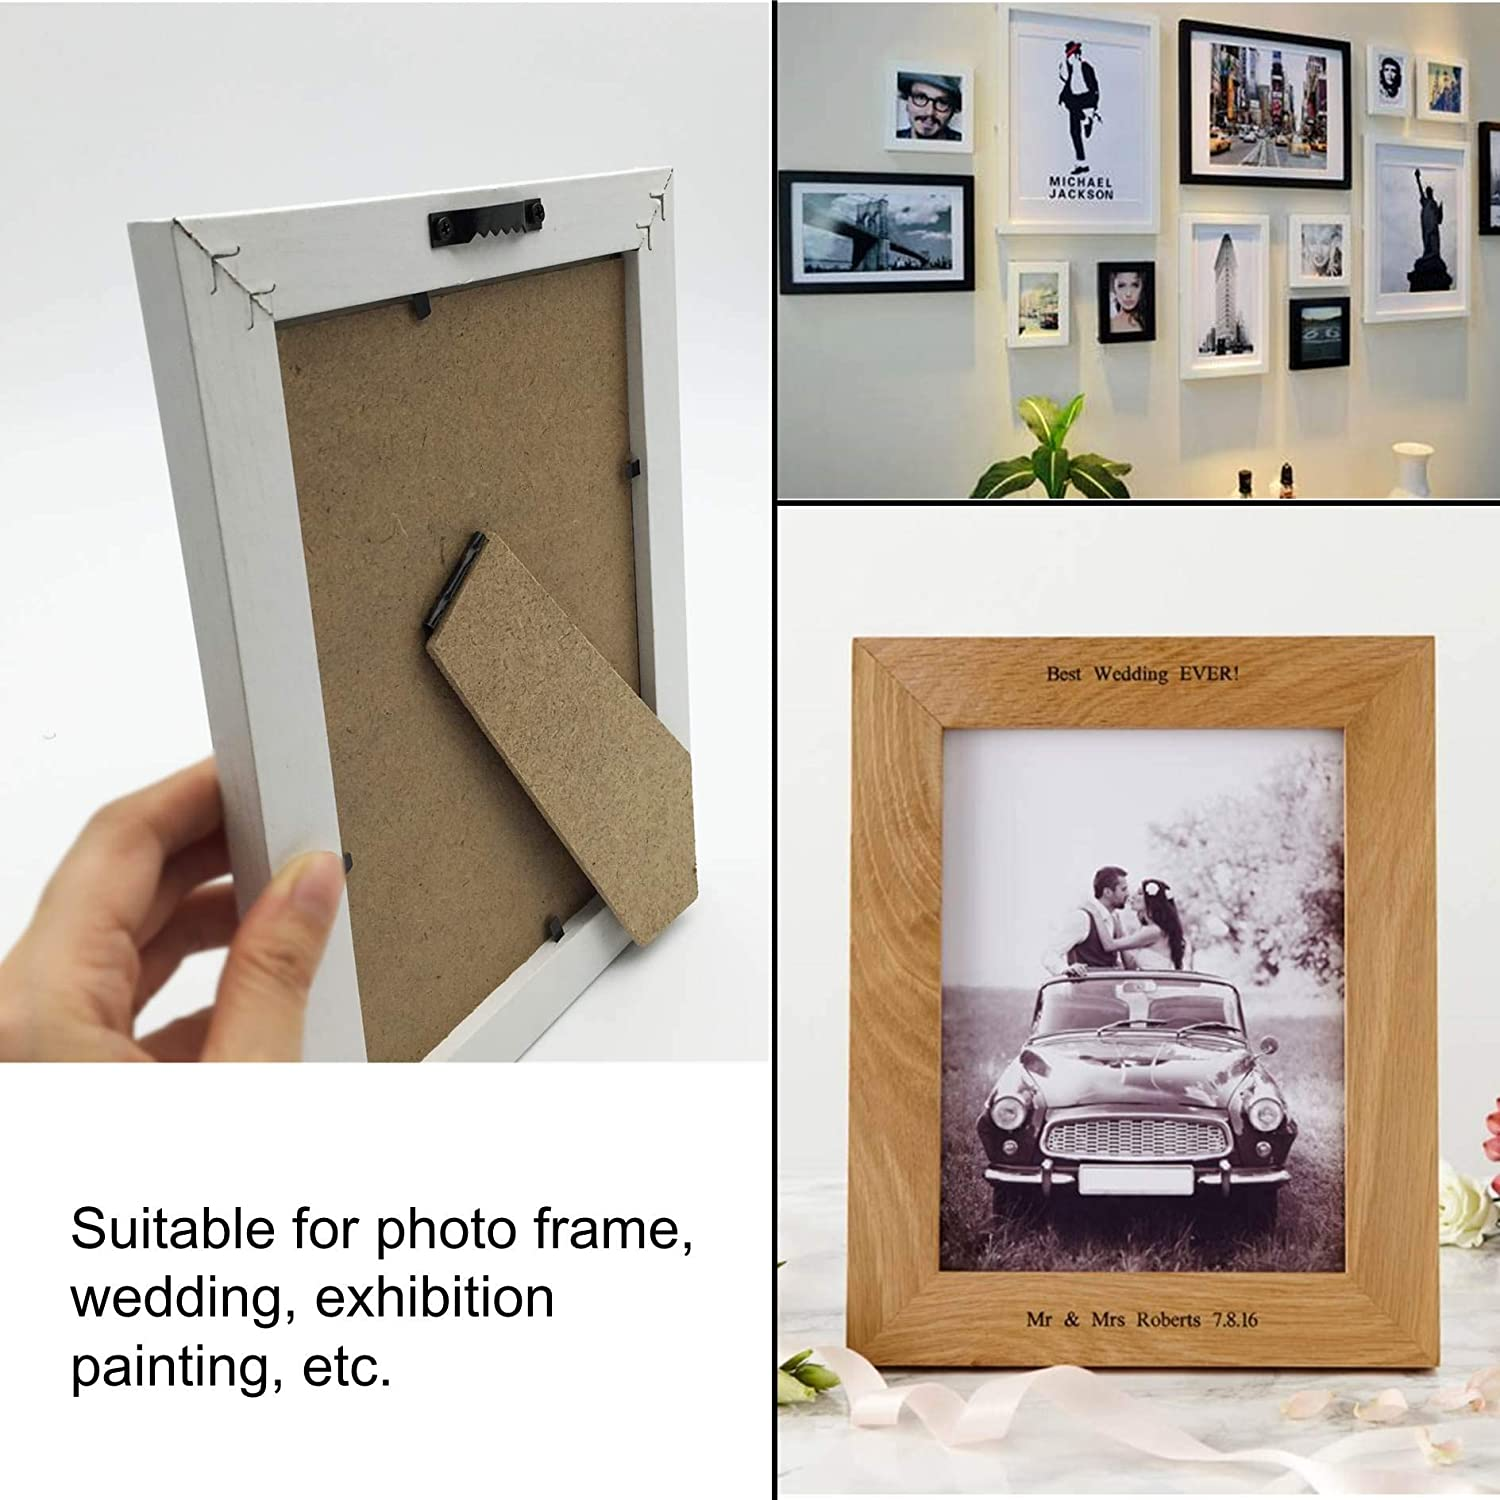 20 Pack D-Ring Steel Picture Hangers Heavy Duty with Screws Picture Frames Double Holes Clasp Picture Hang Solutions for Hanging Clock Paintings Artwork Picture Frame Hook Photos Mirrors